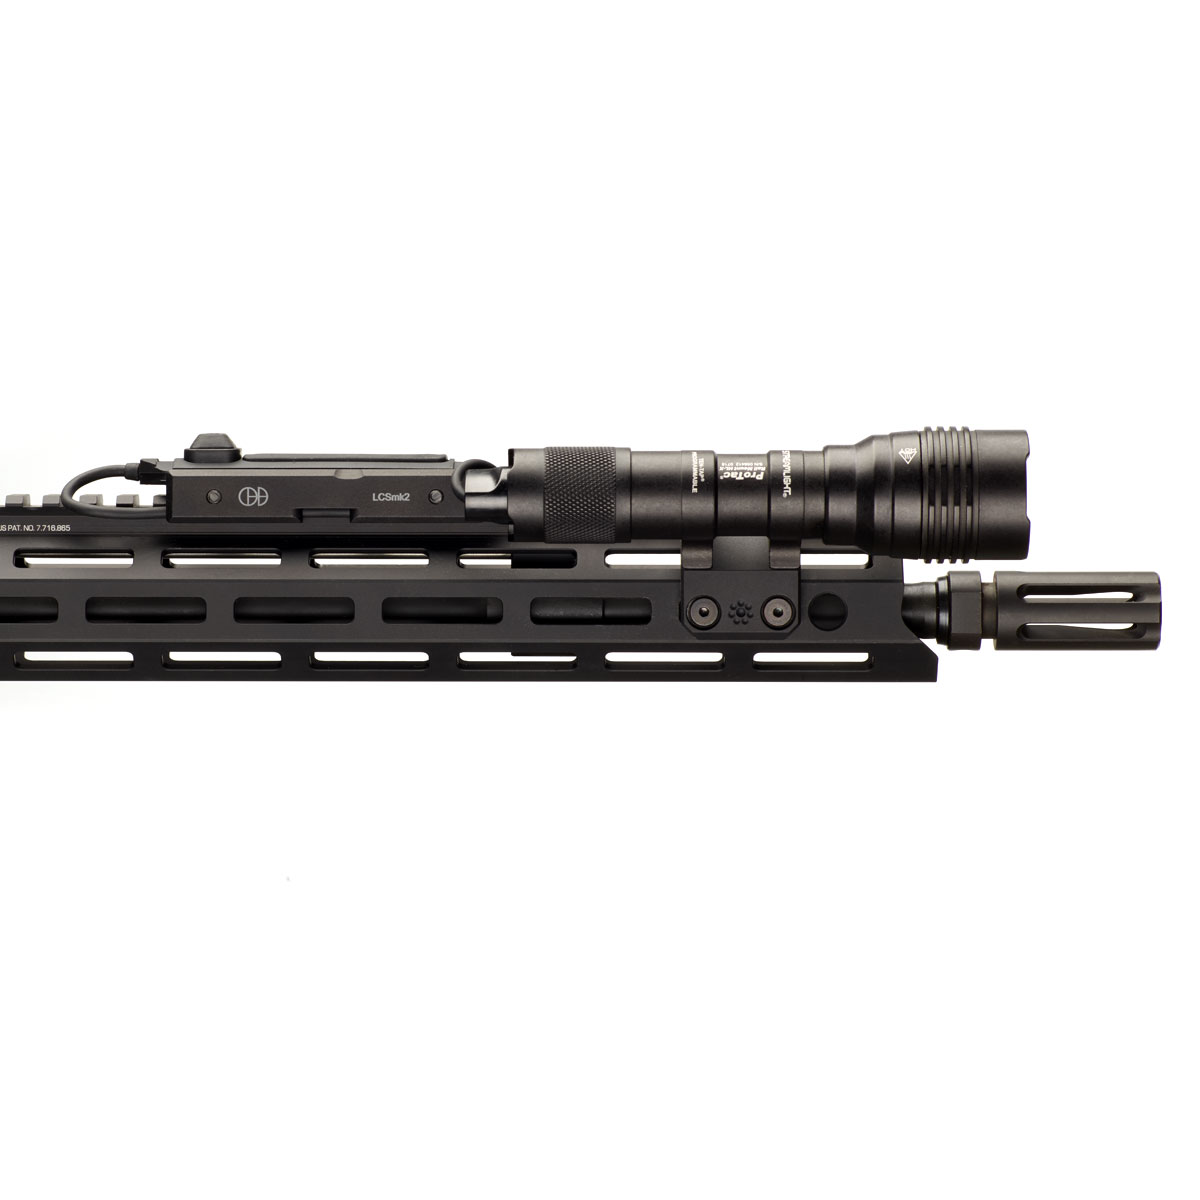 Cloud Defensive Light Control System for Streamlight ProTac Switch - LCSMK2